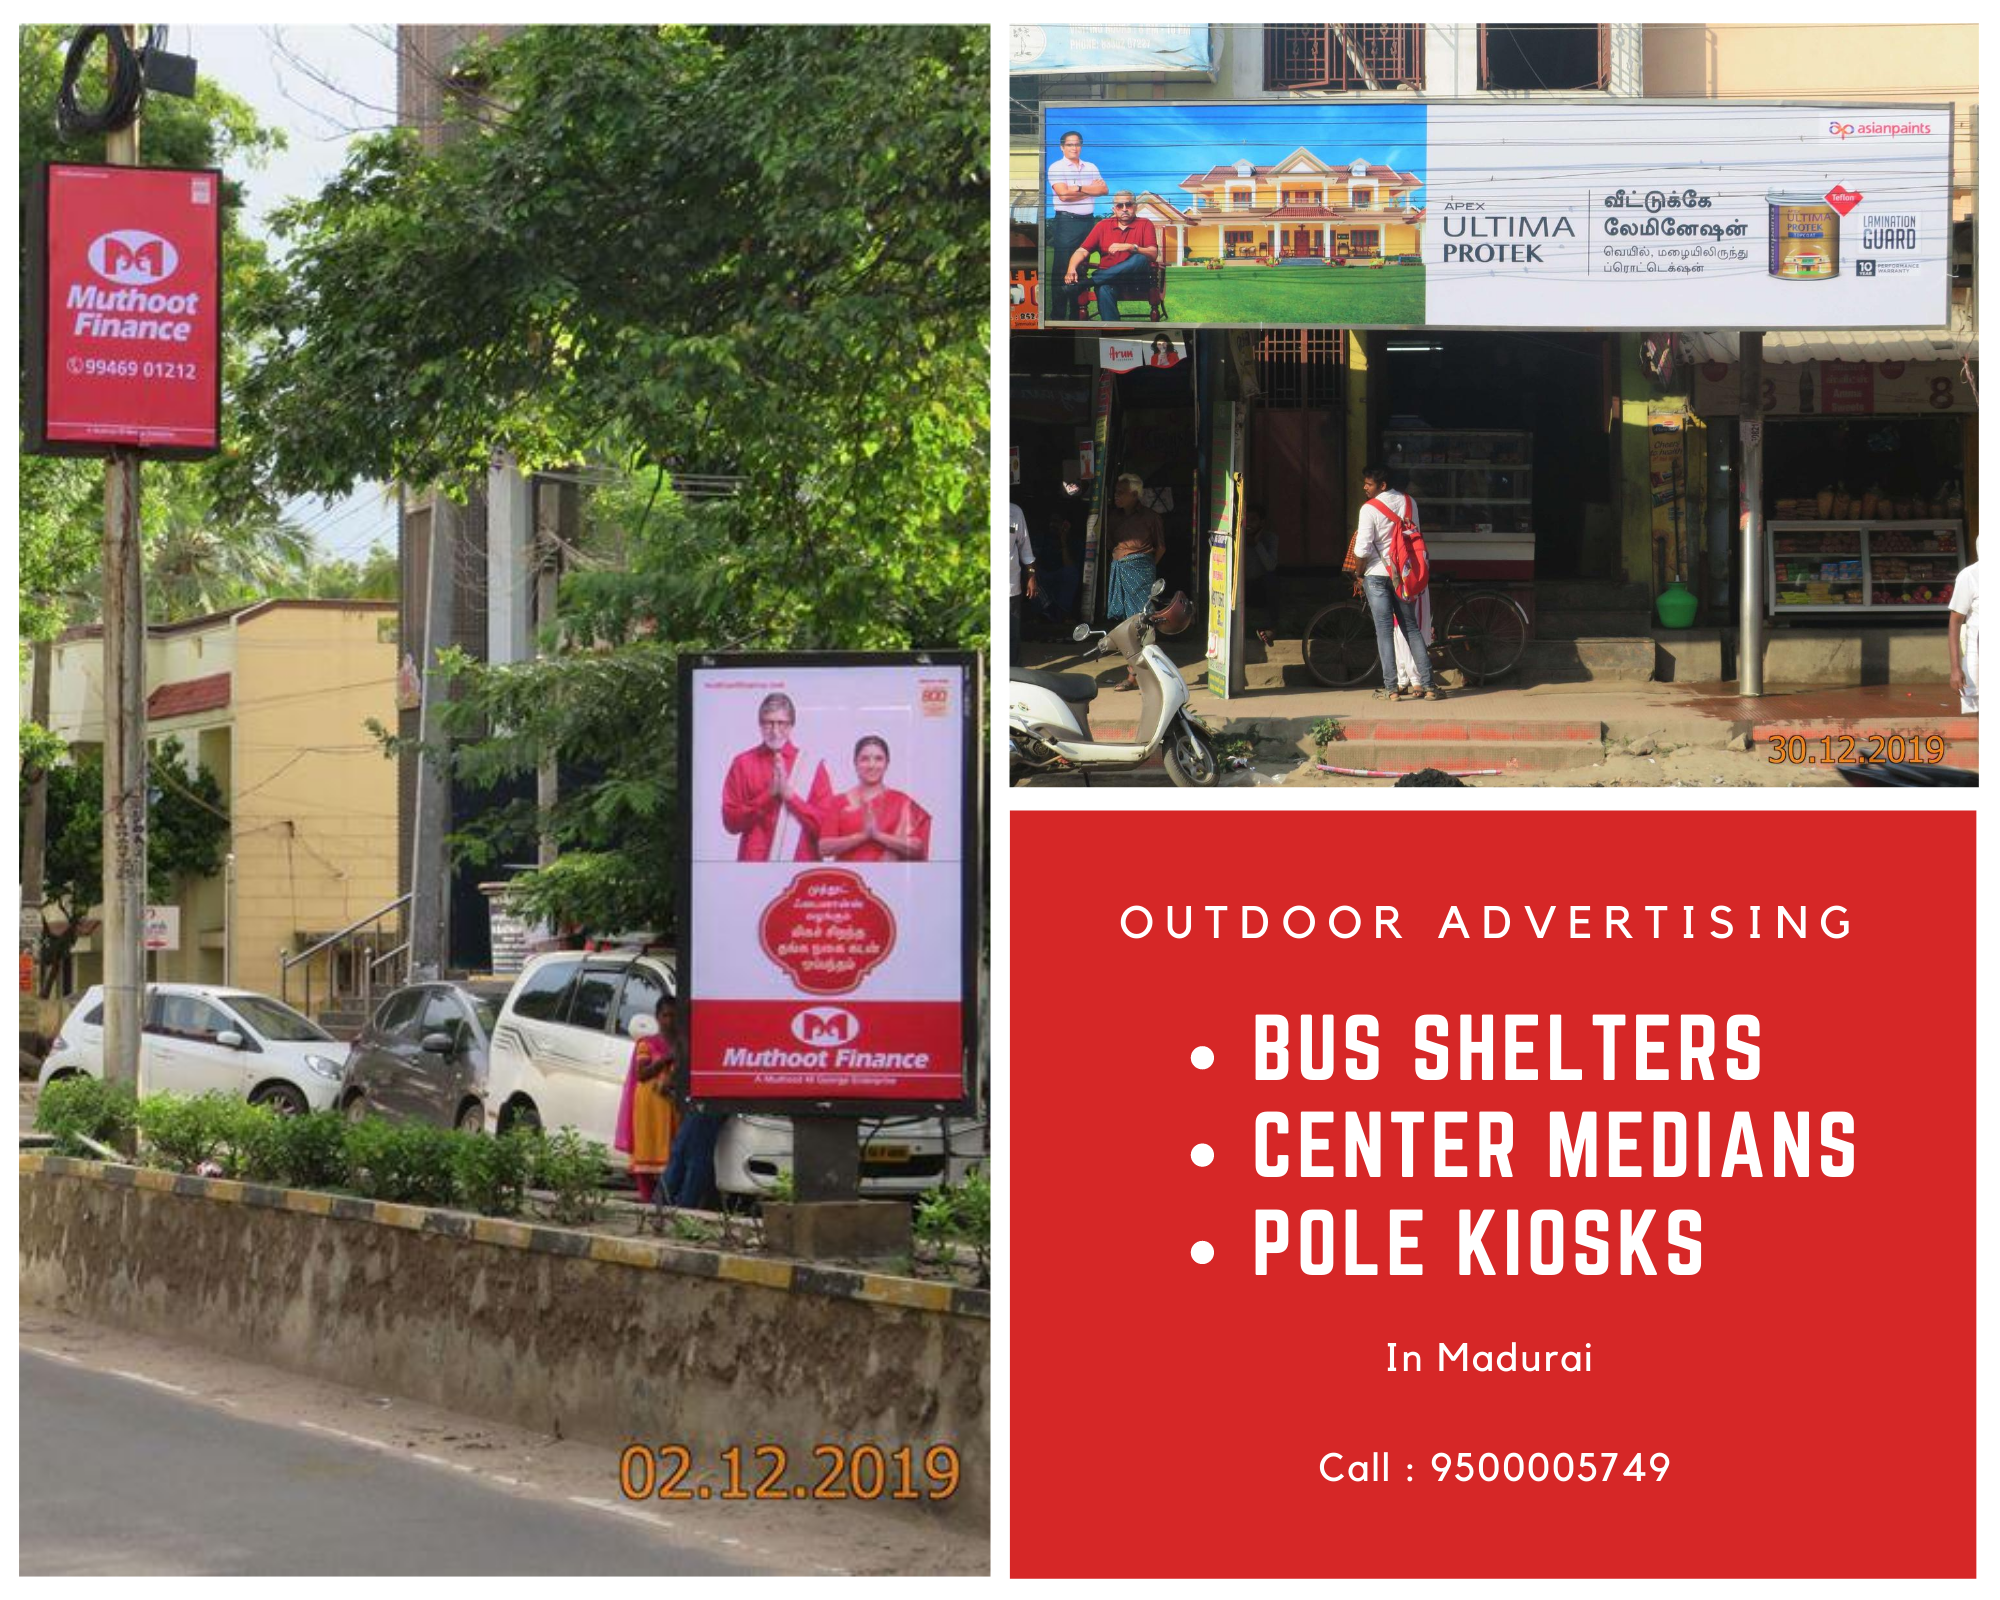 📢 Outdoor Advertising in Madurai,  🔸️Bus Shelters 🔸️Center Medians 🔸️Pole Kiosks  For OutOfHome #AdvertisingCampaign Booking ☎ 9500005749 !  #madurai #tamilnadu #busshelter #outdooradvertising #advertisingagency #advertising #maduraijunction #marketingagency #creativeagency #business #ads #campaign #brandactivation #brandmanagement #advertisment #ooh #mediaagency #oohadvertising #outofhome #outofhomemedia #outofhomeadvertising #advertisingcampaign #mediaplanning #campaignmanagement.